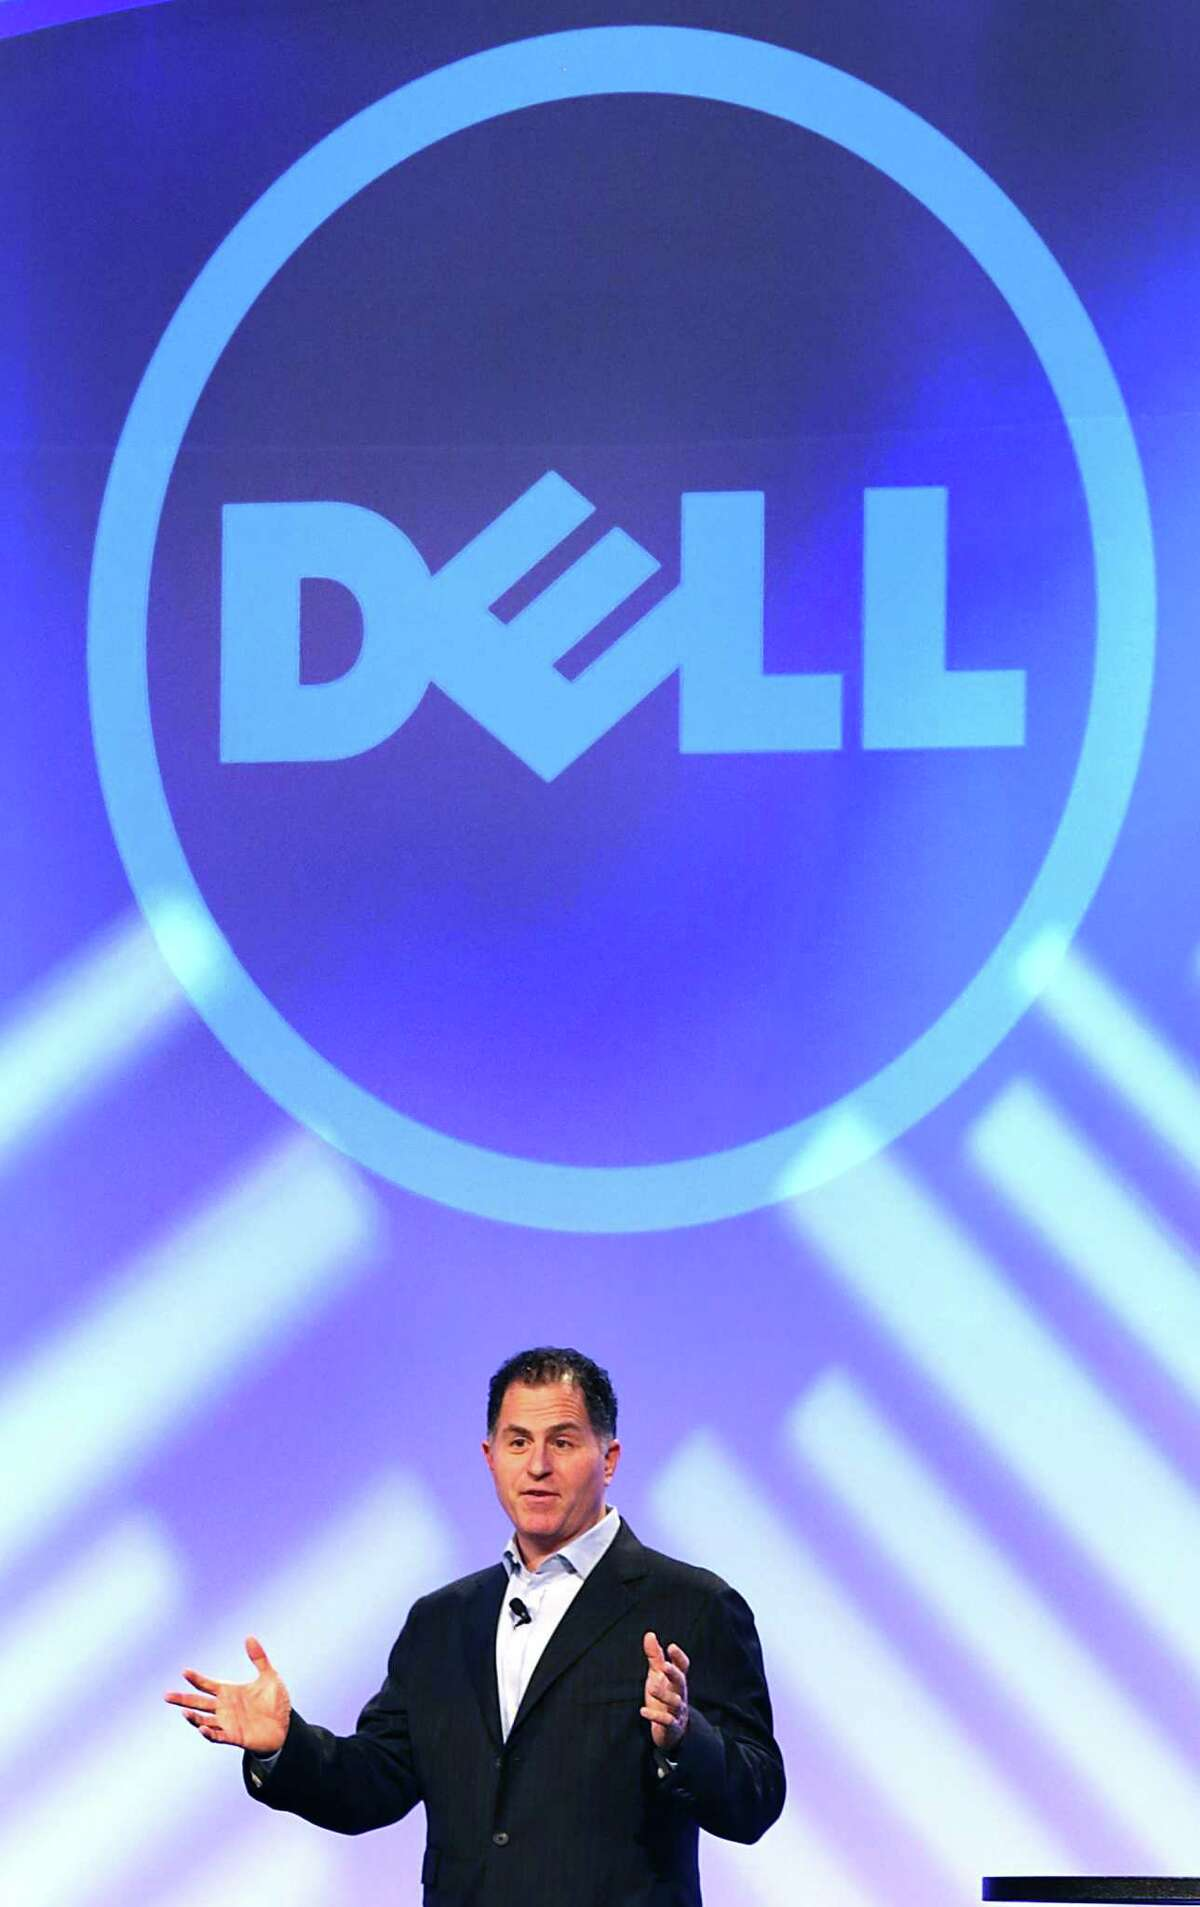 Michael Dell, founder and CEO of Dell Technologies, shown in 2013, is one of two high-powered players recently added to the Spurs ownership. The other is global investment firm Sixth Street.